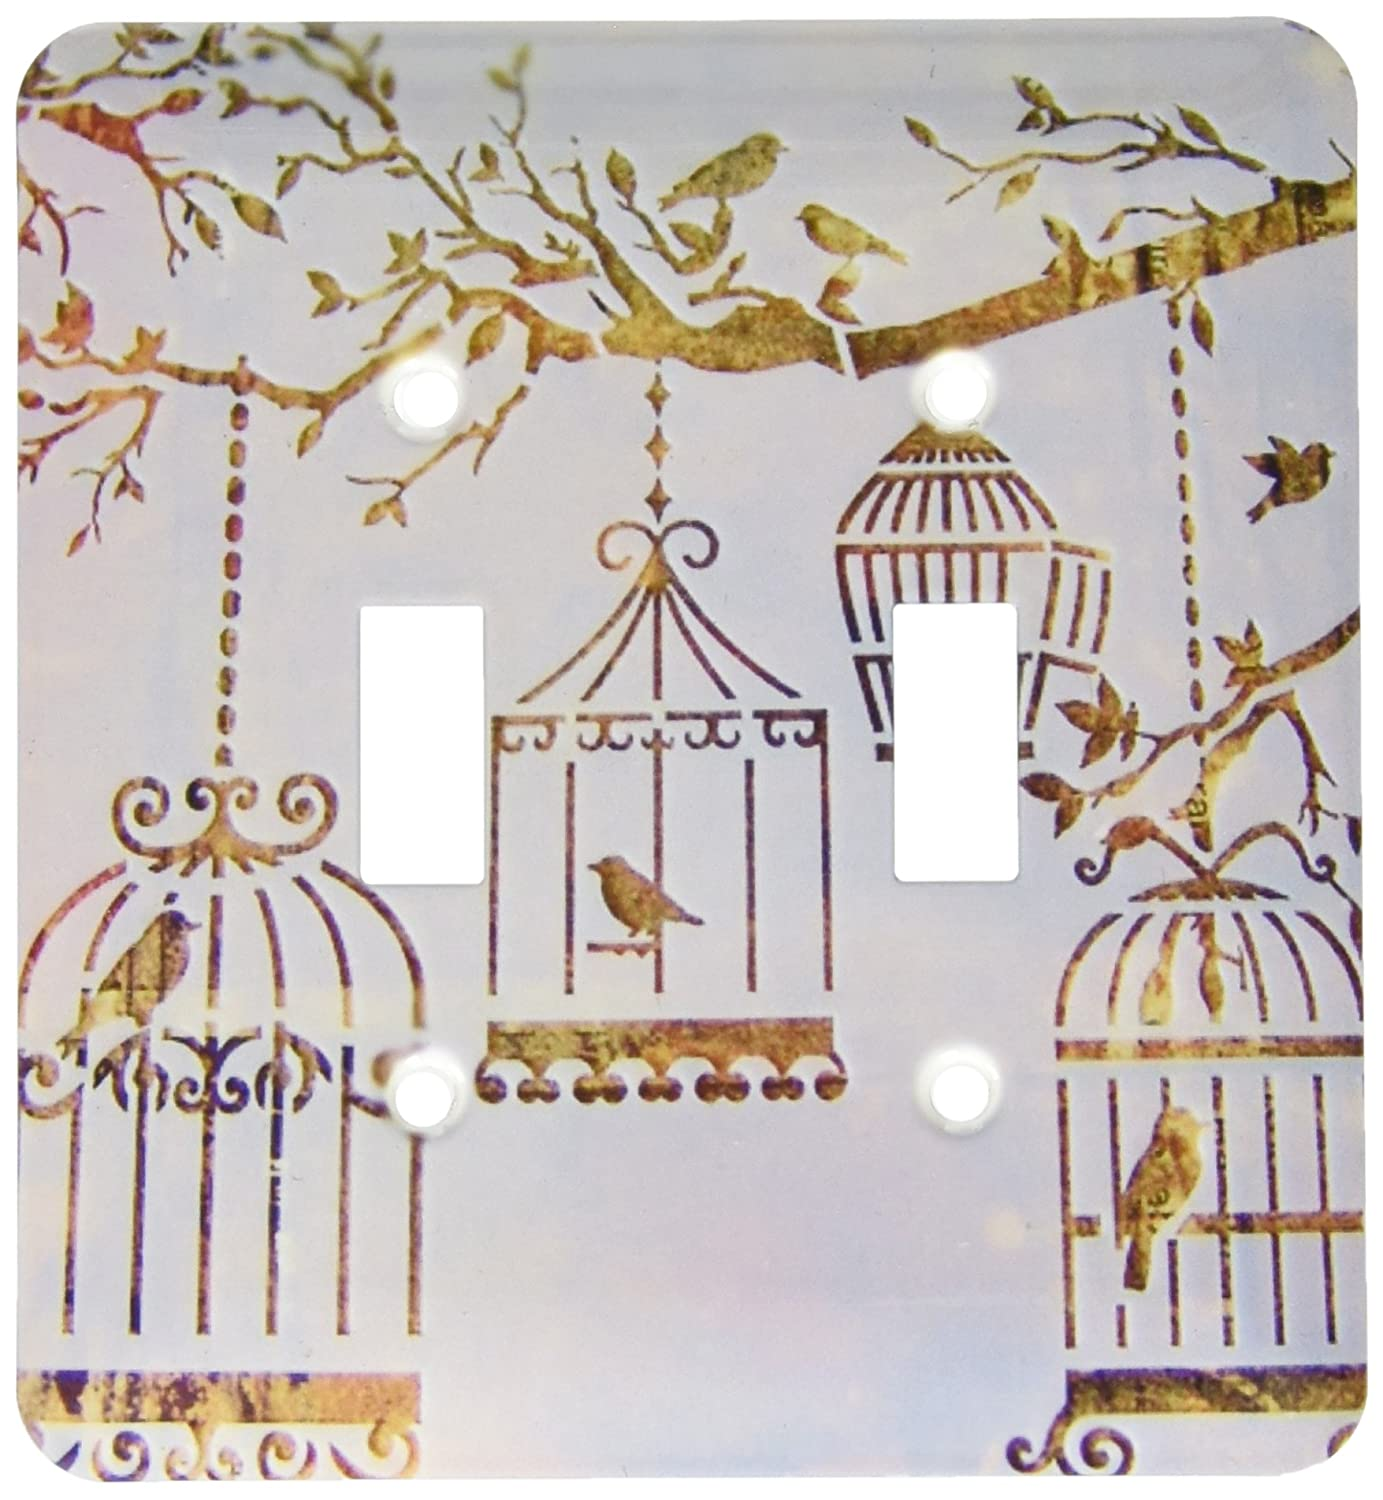 3dRose lsp/_163069/_2 Image of Birds and Bird Cages in Fall Colors and Tree Branch Double Toggle Switch